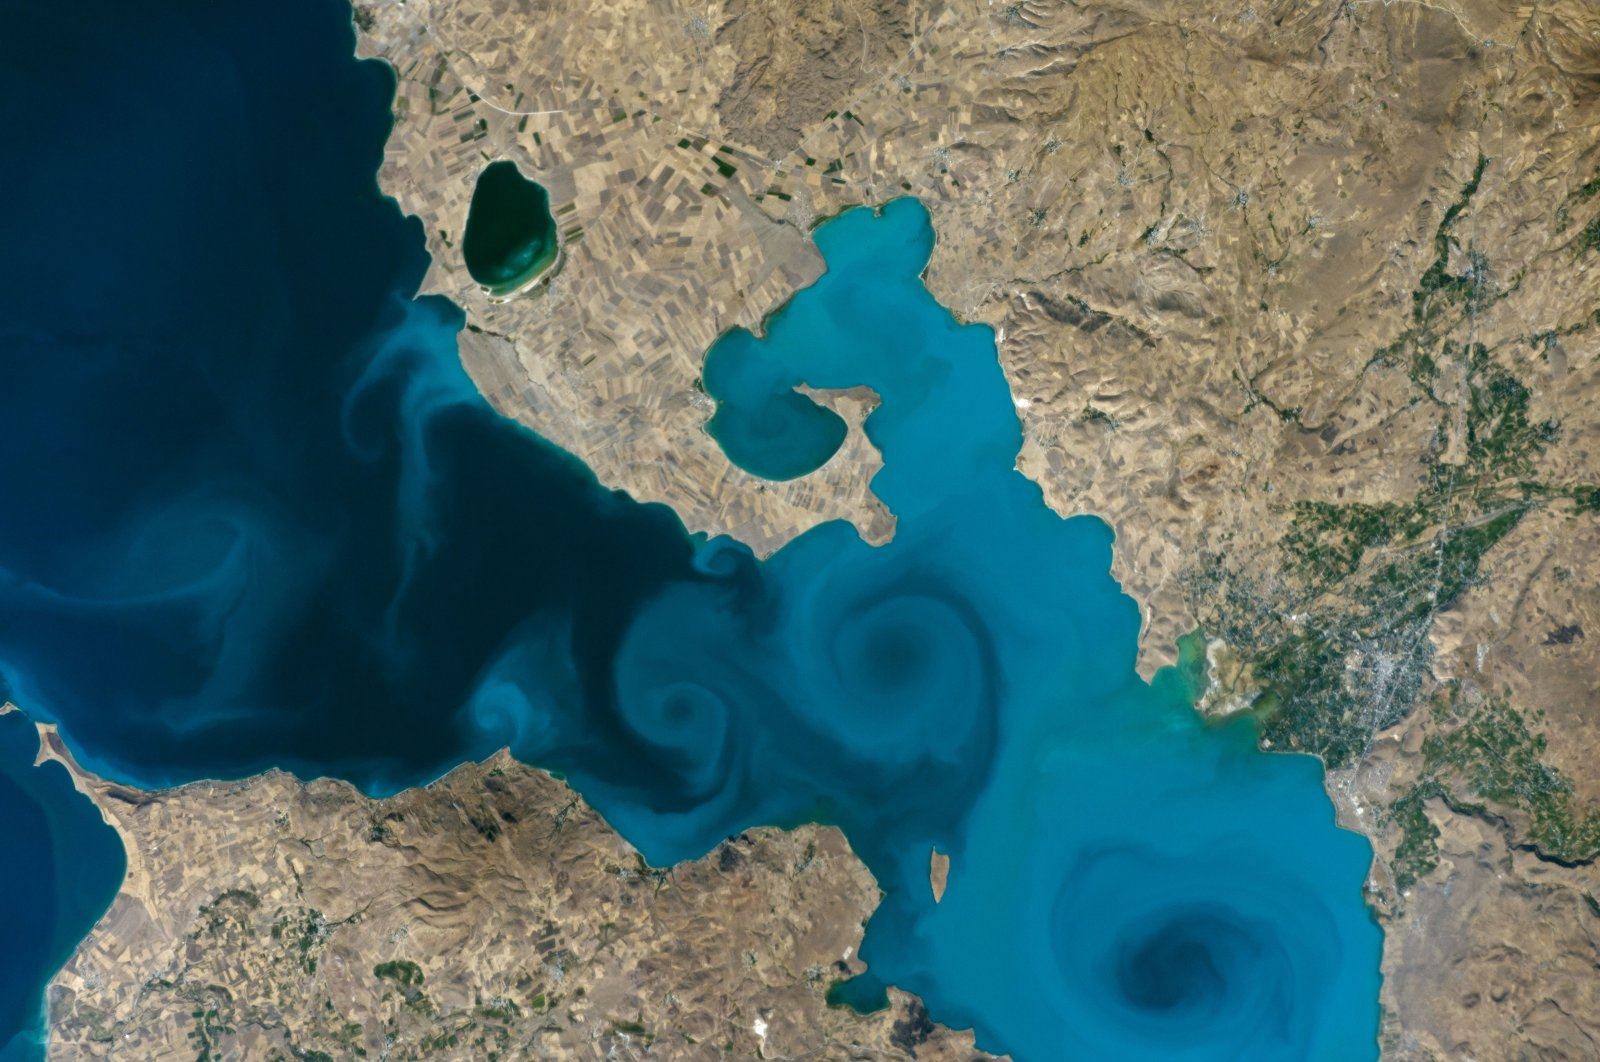 Turkey's Lake Van seen from space in a photo taken by astronaut Kate Rubins from the International Space Station orbiting Earth, Sept. 12, 2016. (Courtesy of NASA)